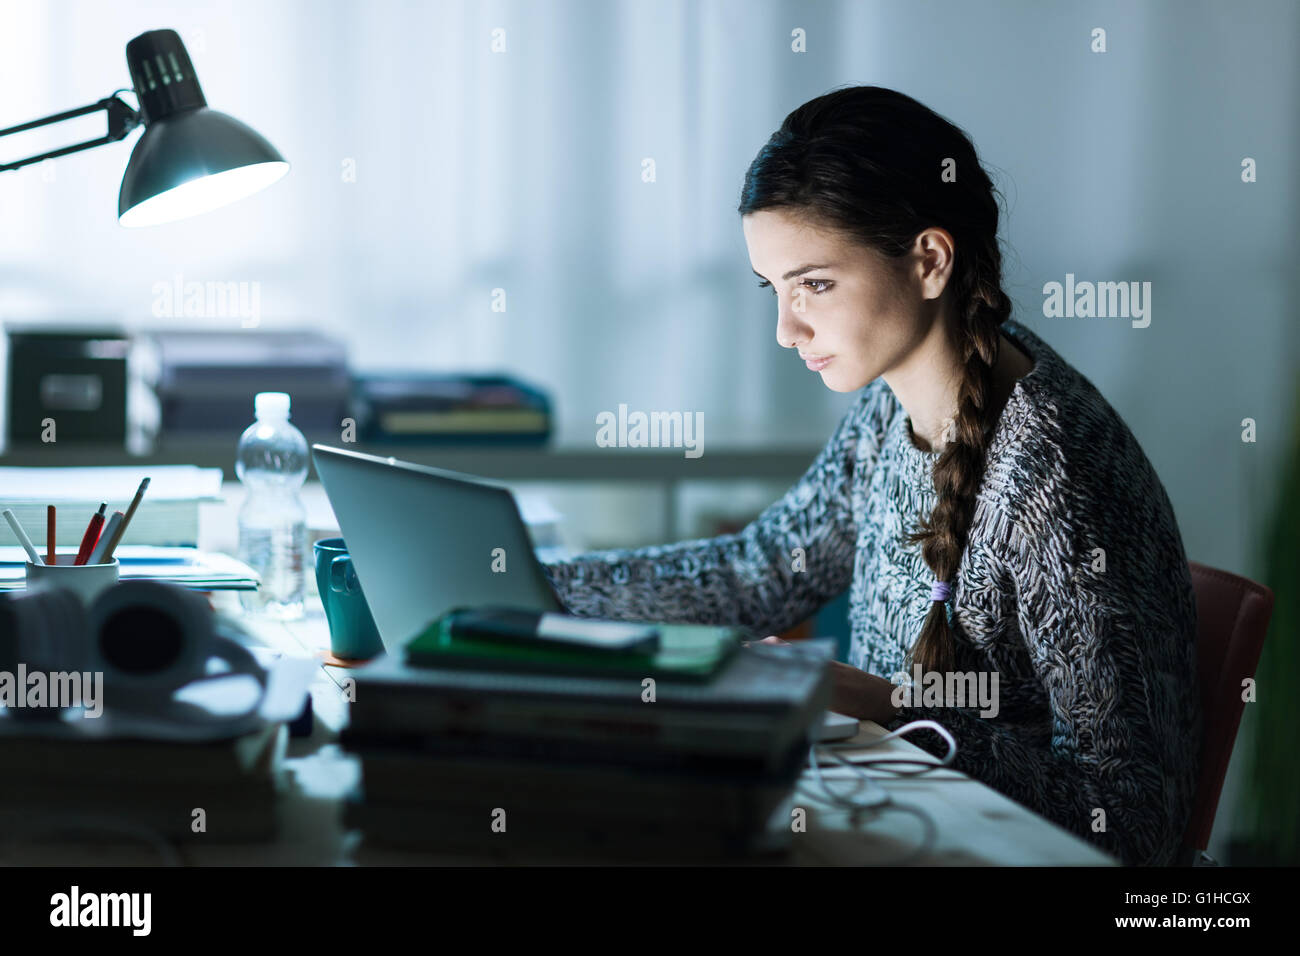 Pretty young student sitting at desk and doing her homework, she is connecting to the internet with a laptop - Stock Image